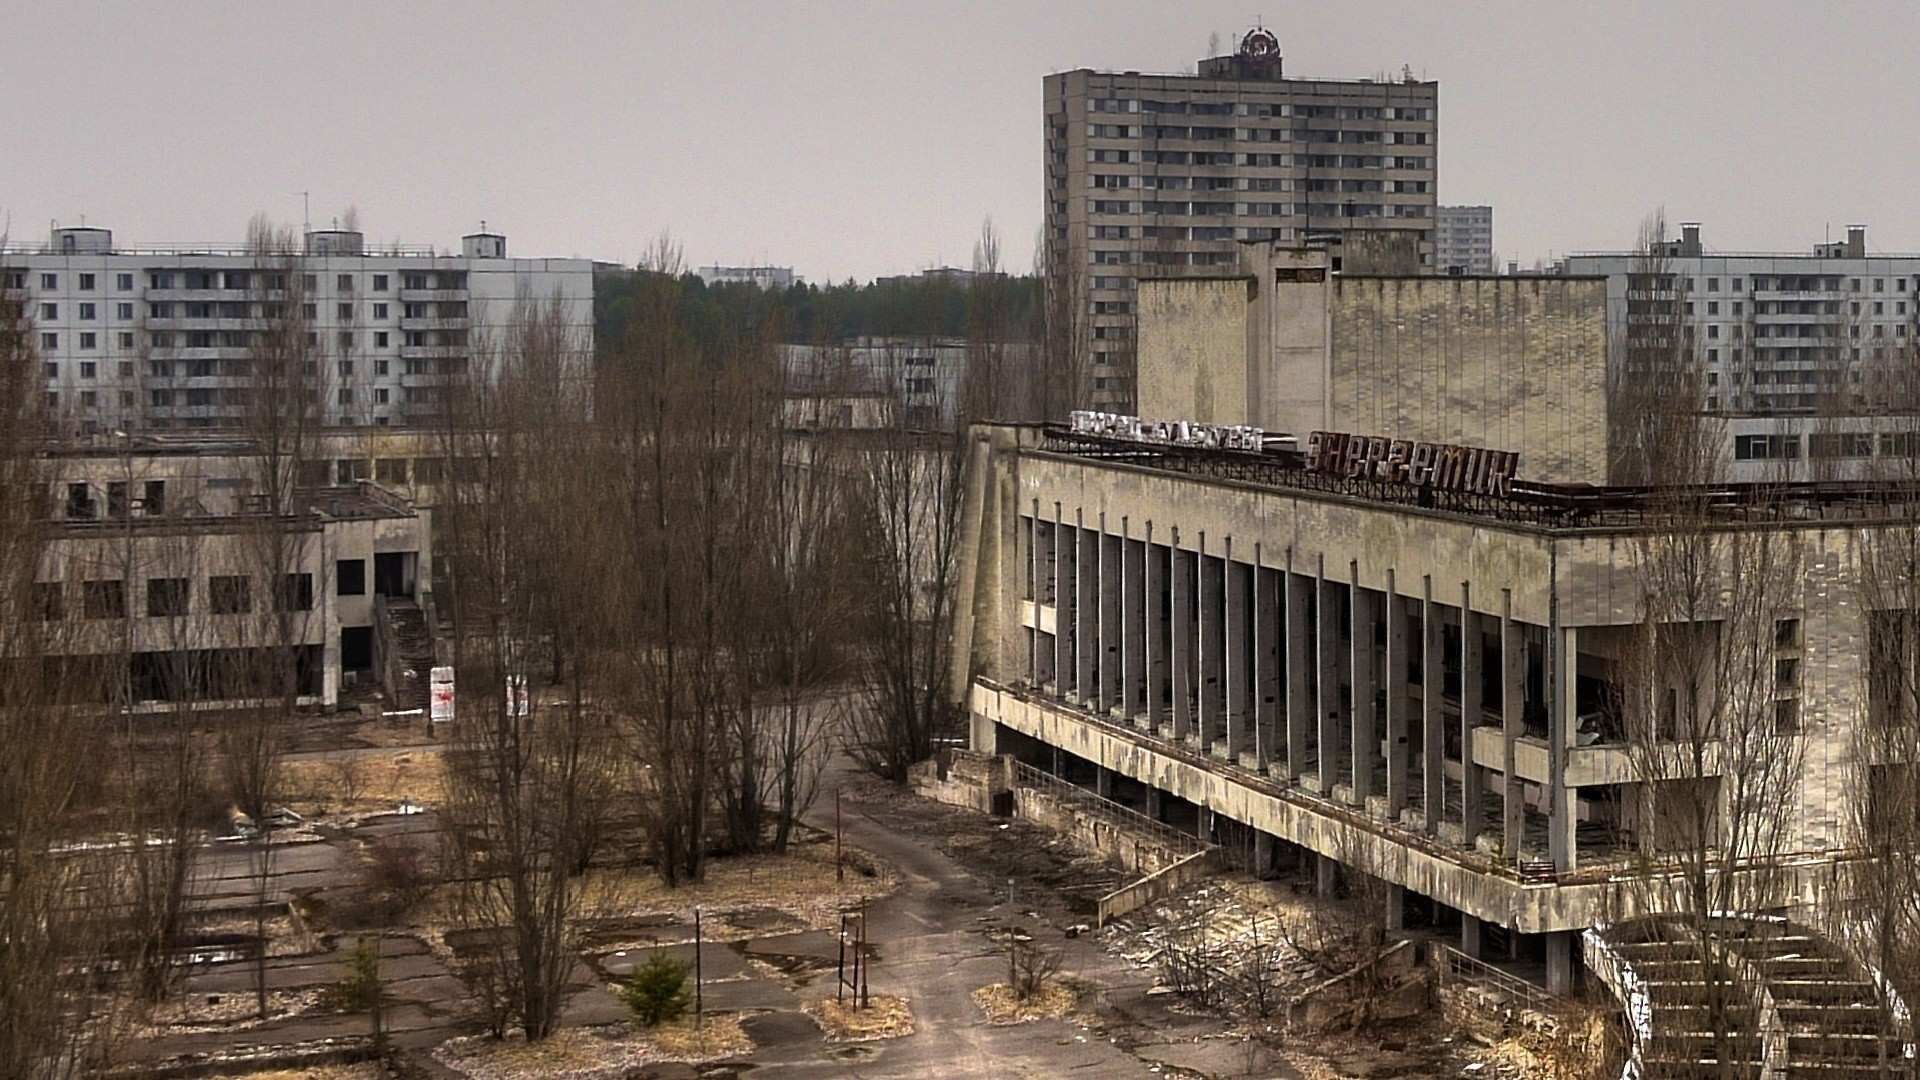 cityscapes Pripyat Chernobyl abandoned HD Wallpaper